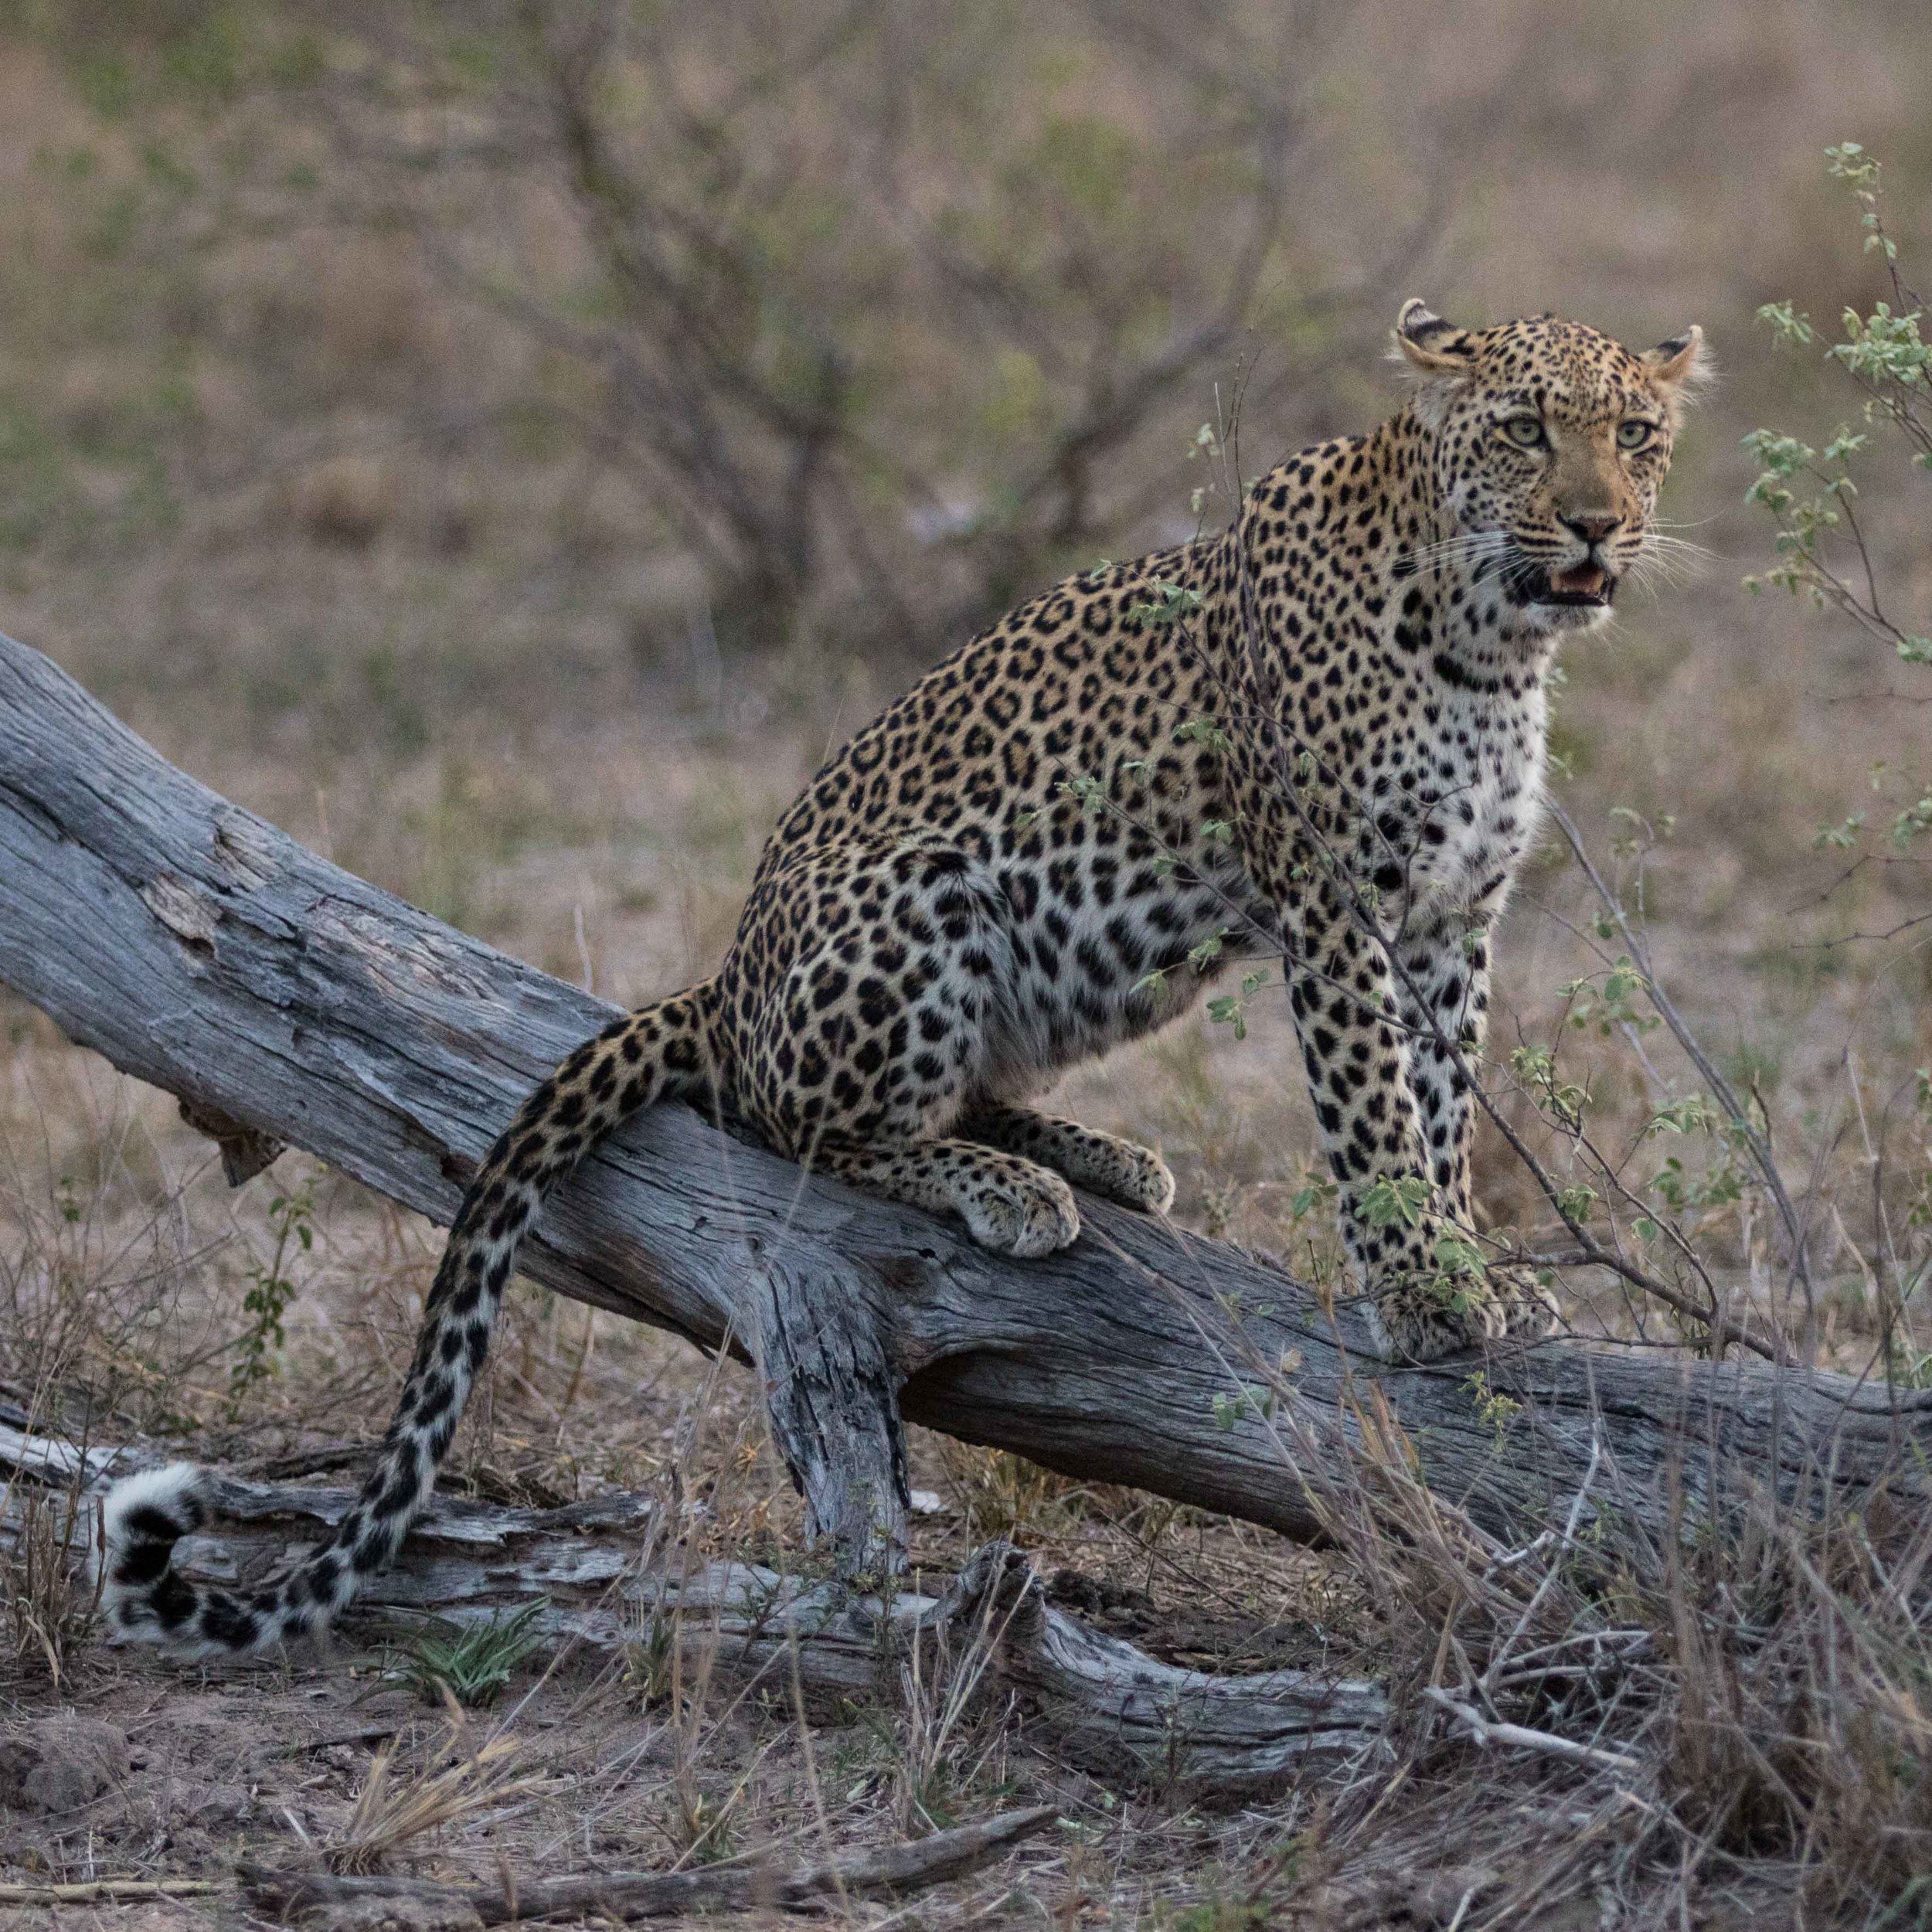 An adult female leopard searches for her cub from a decent vantage point.